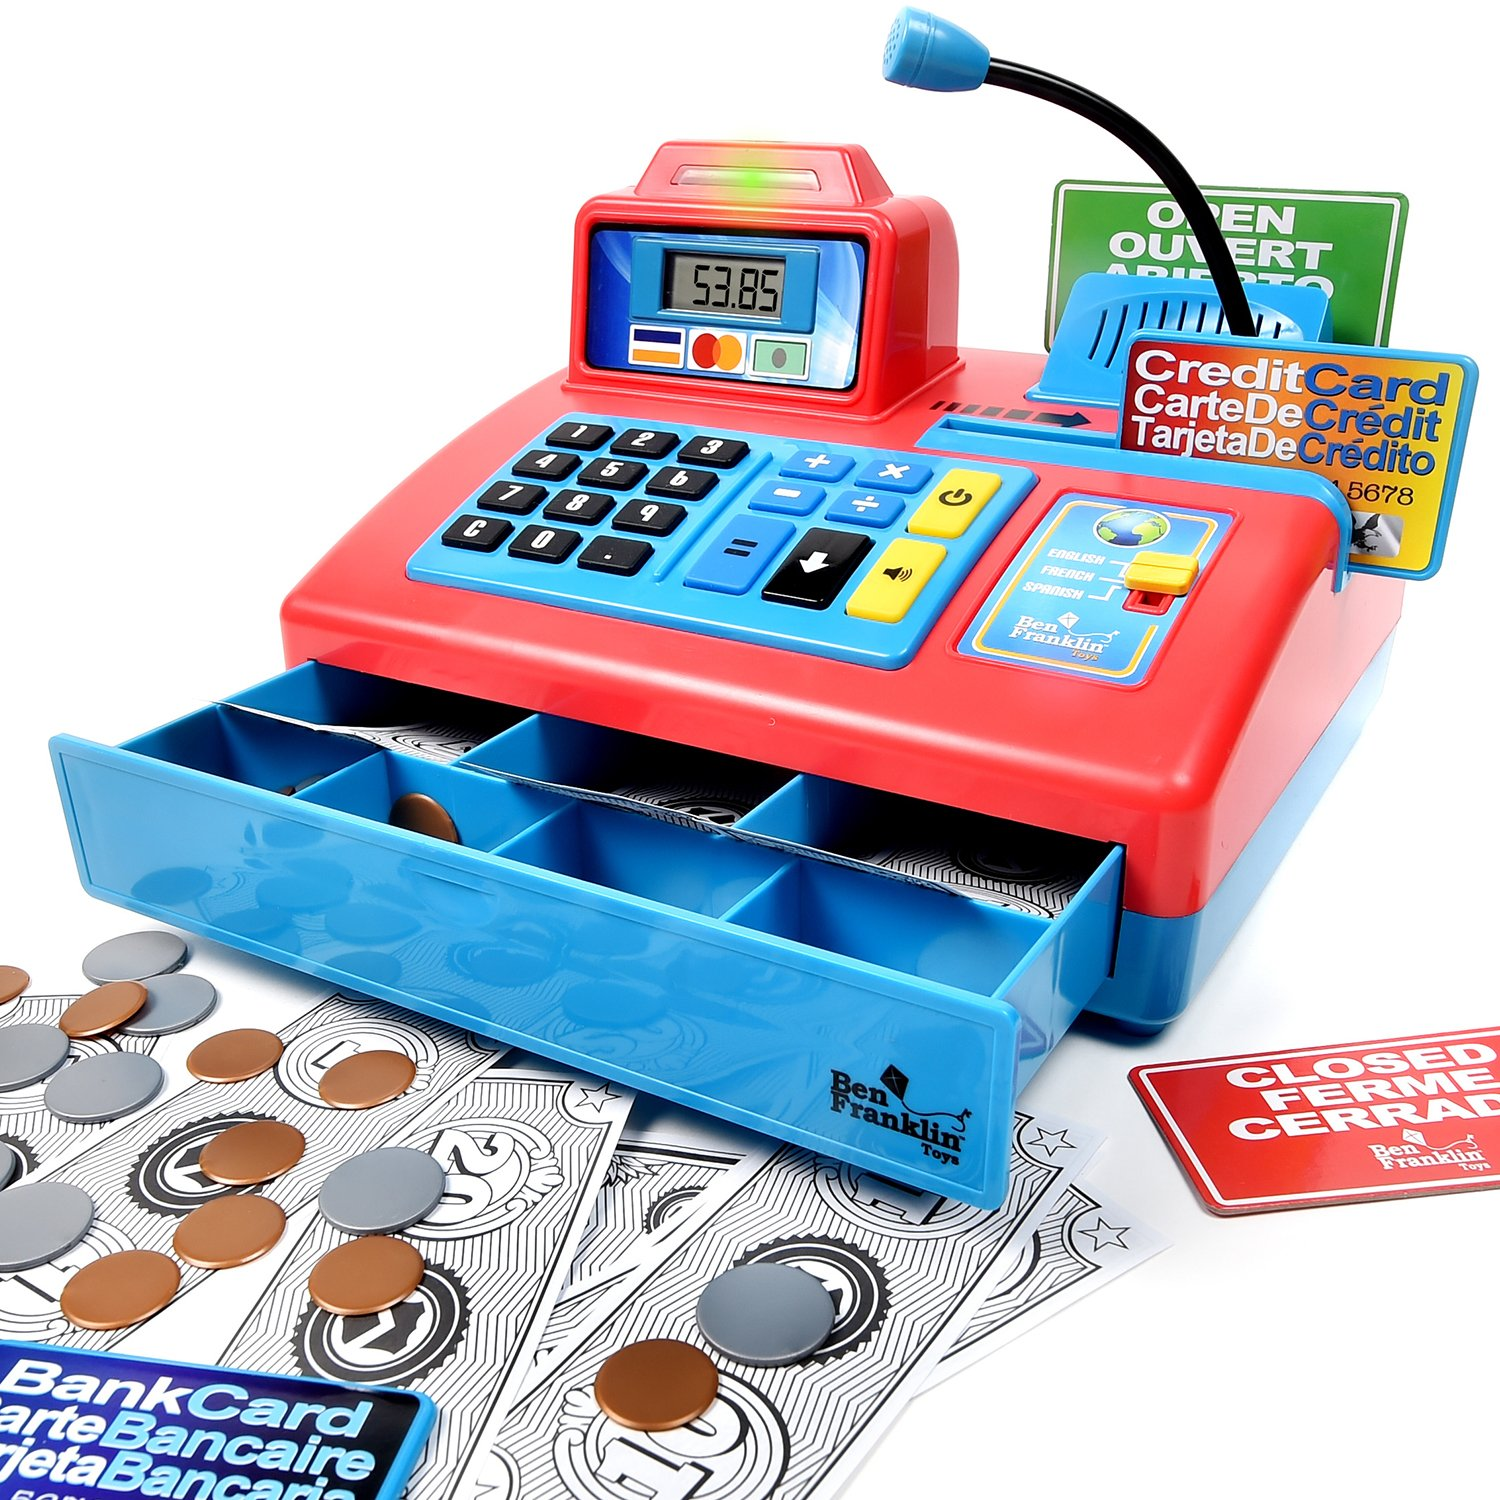 talking toy cash register store learning play candy shoe best xmas gift new 856670005568 ebay. Black Bedroom Furniture Sets. Home Design Ideas